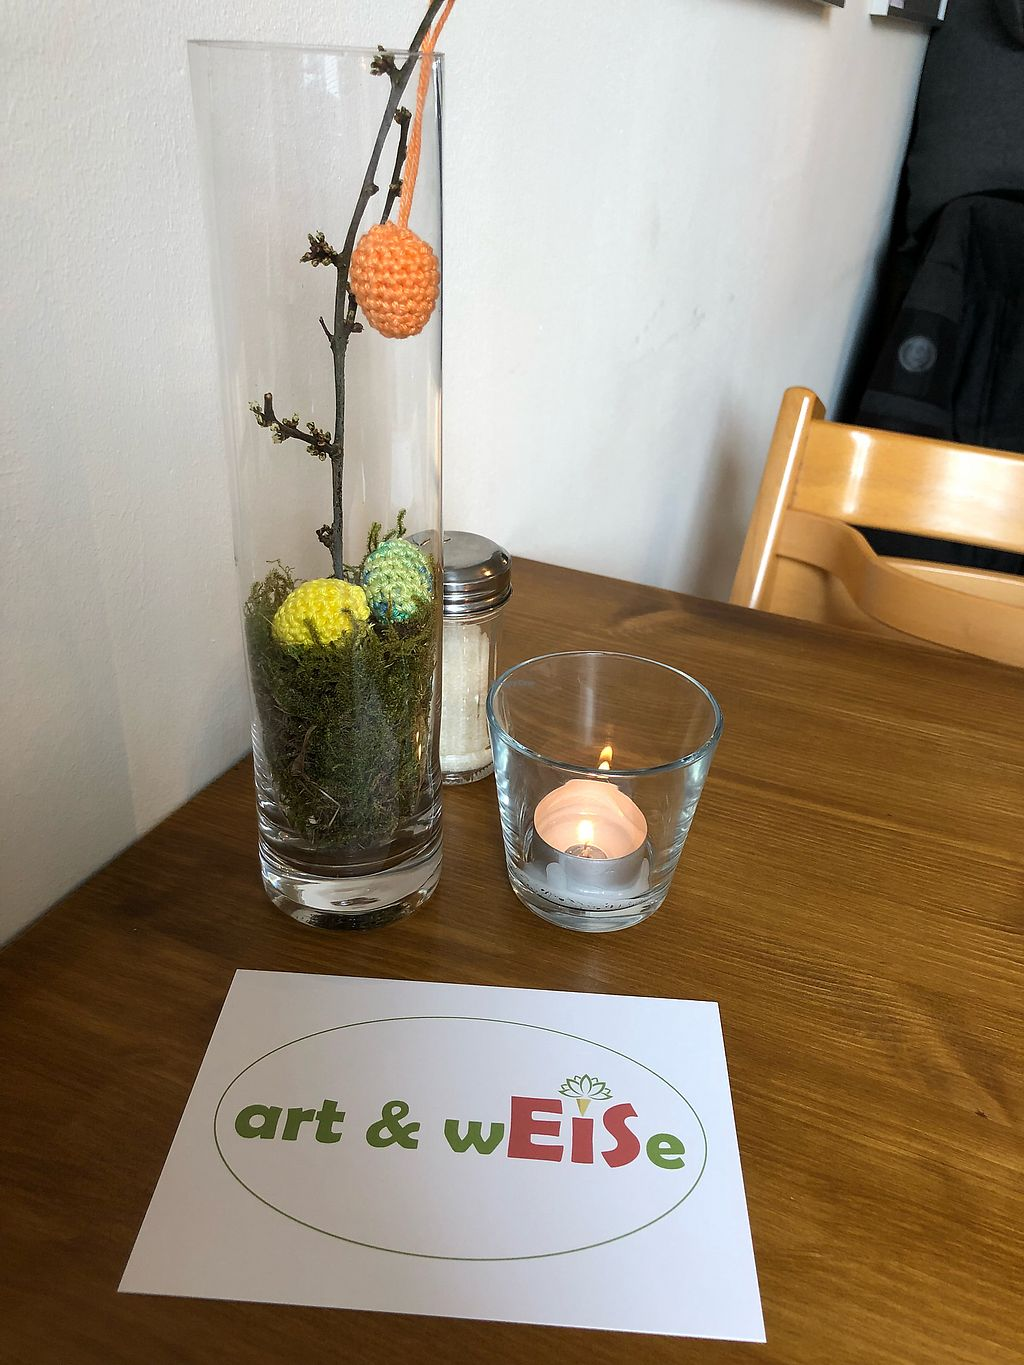 "Photo of Eiscafe art & wEISe  by <a href=""/members/profile/AnjaSulanc"">AnjaSulanc</a> <br/>Ostern 2018 <br/> April 6, 2018  - <a href='/contact/abuse/image/114511/381417'>Report</a>"